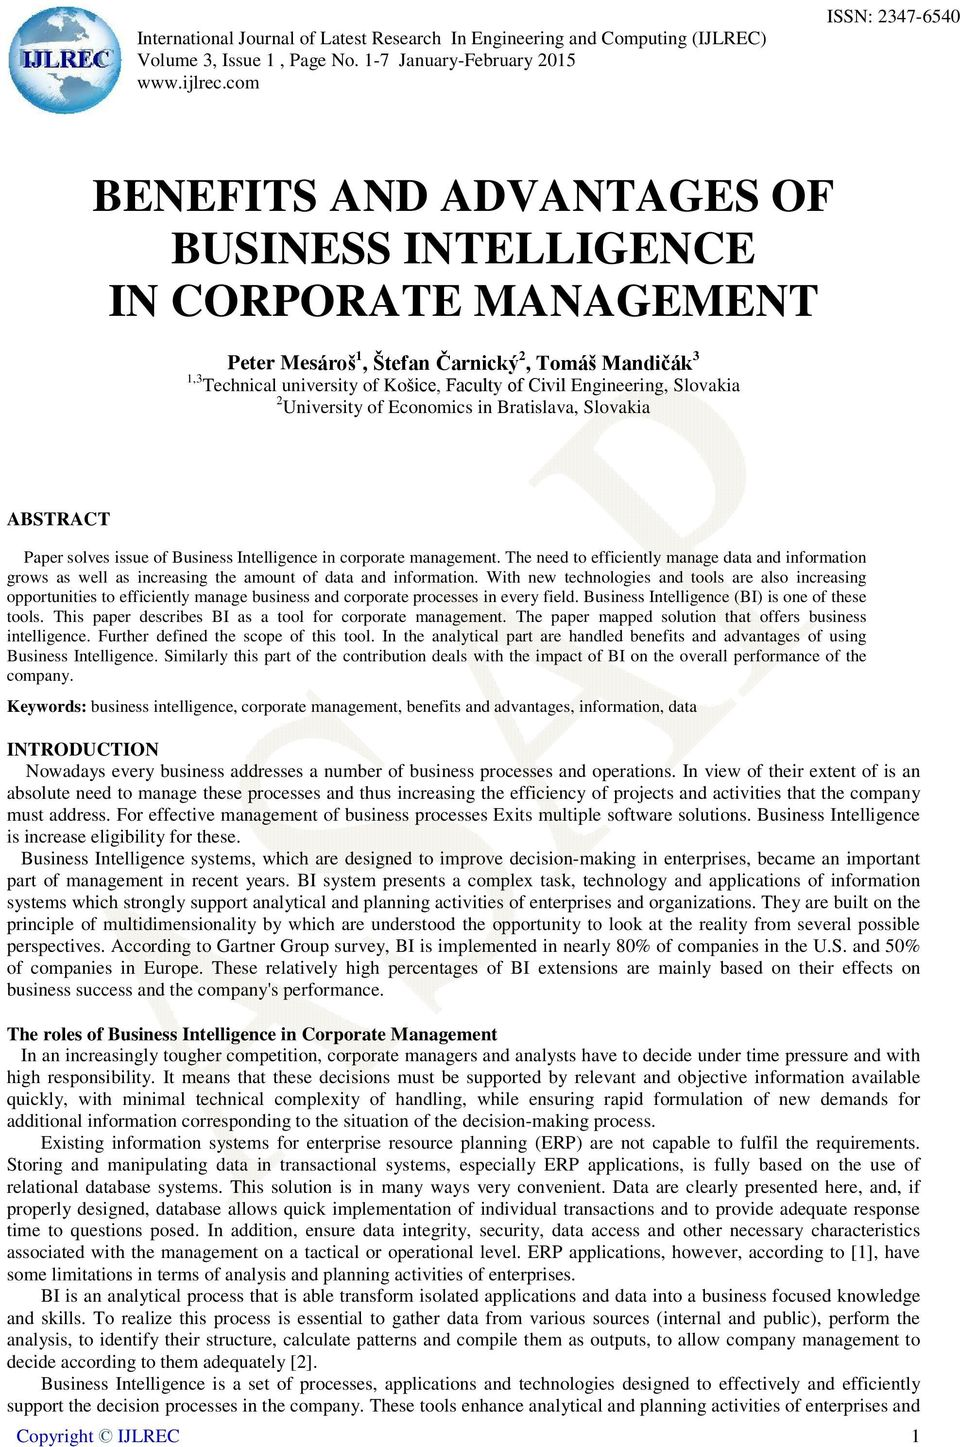 Engineering, Slovakia 2 University of Economics in Bratislava, Slovakia ABSTRACT Paper solves issue of Business Intelligence in corporate management.